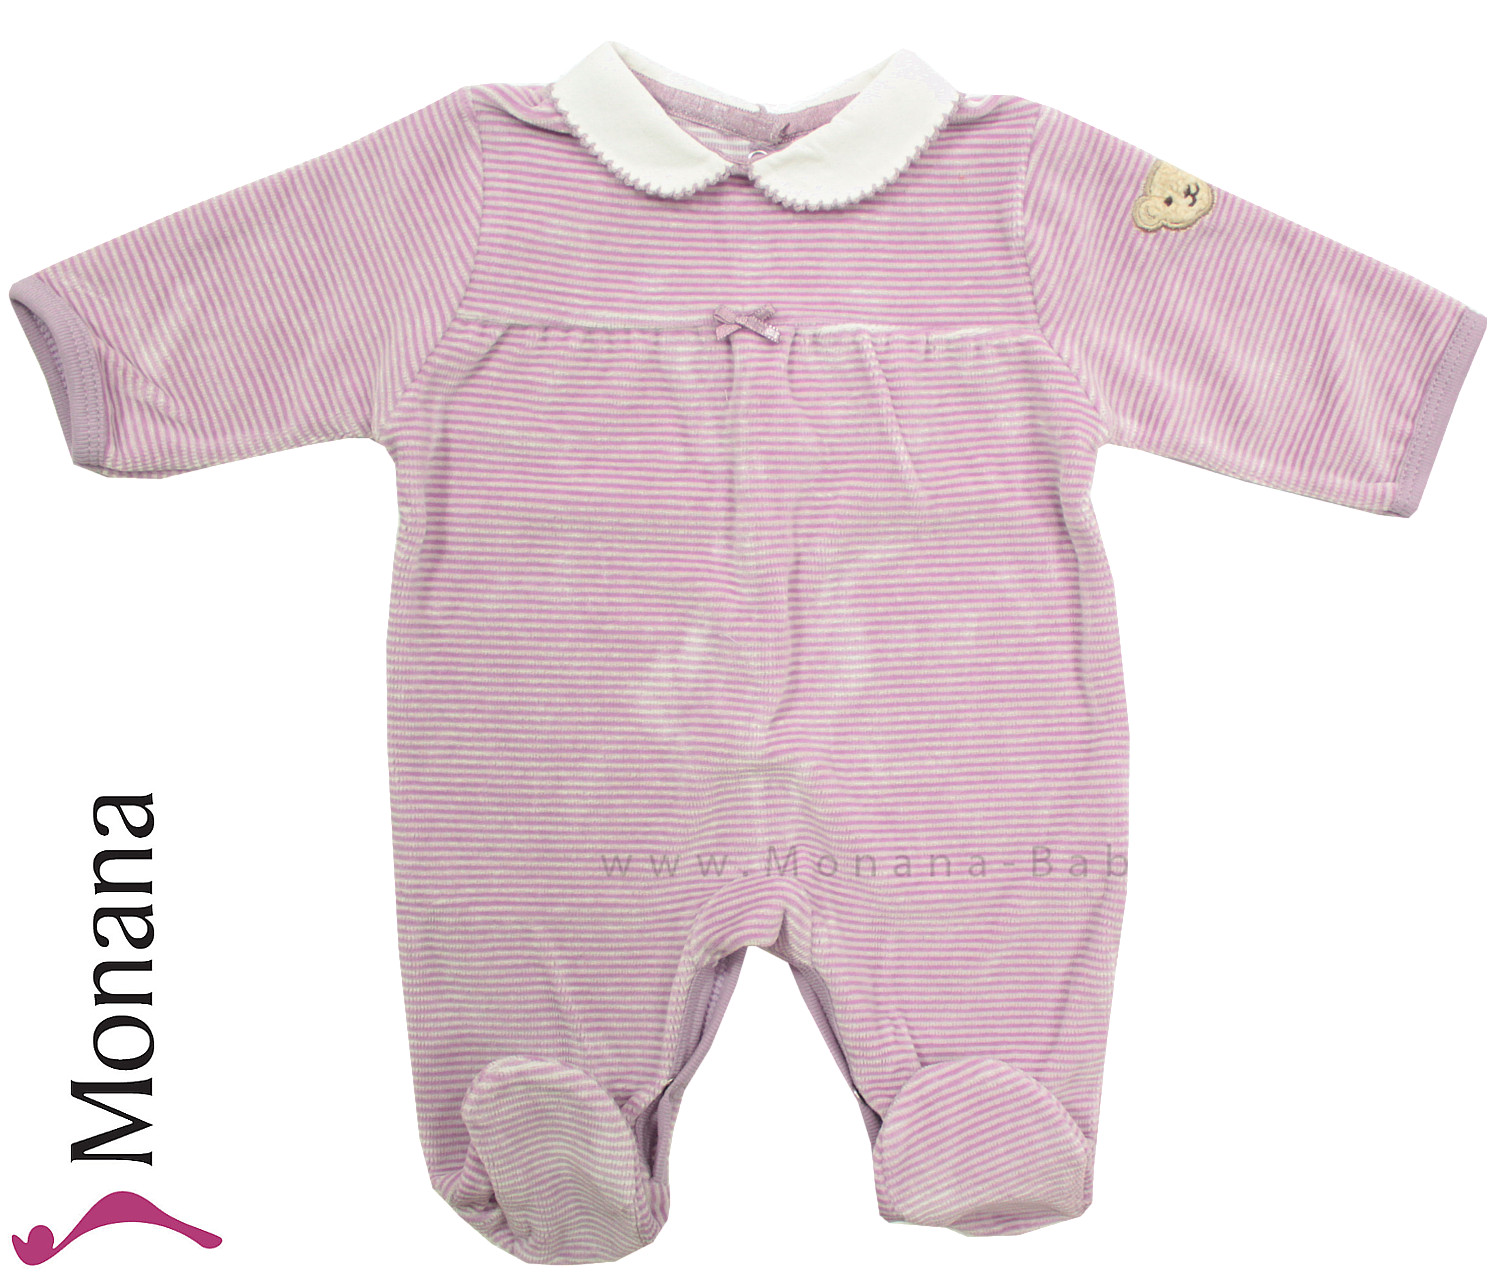 Steiff Collection Nicki-Baby-Overall Autumn Poem lila<br>Größe: 62